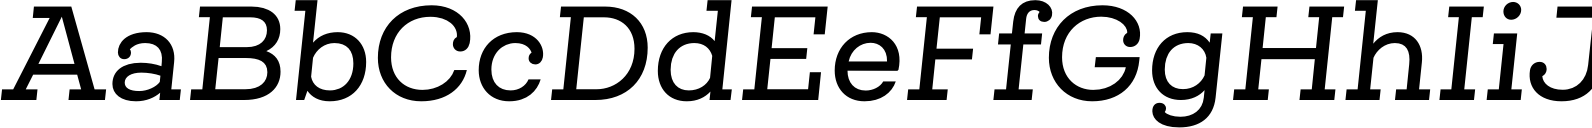 Queulat Alt Medium Italic Font